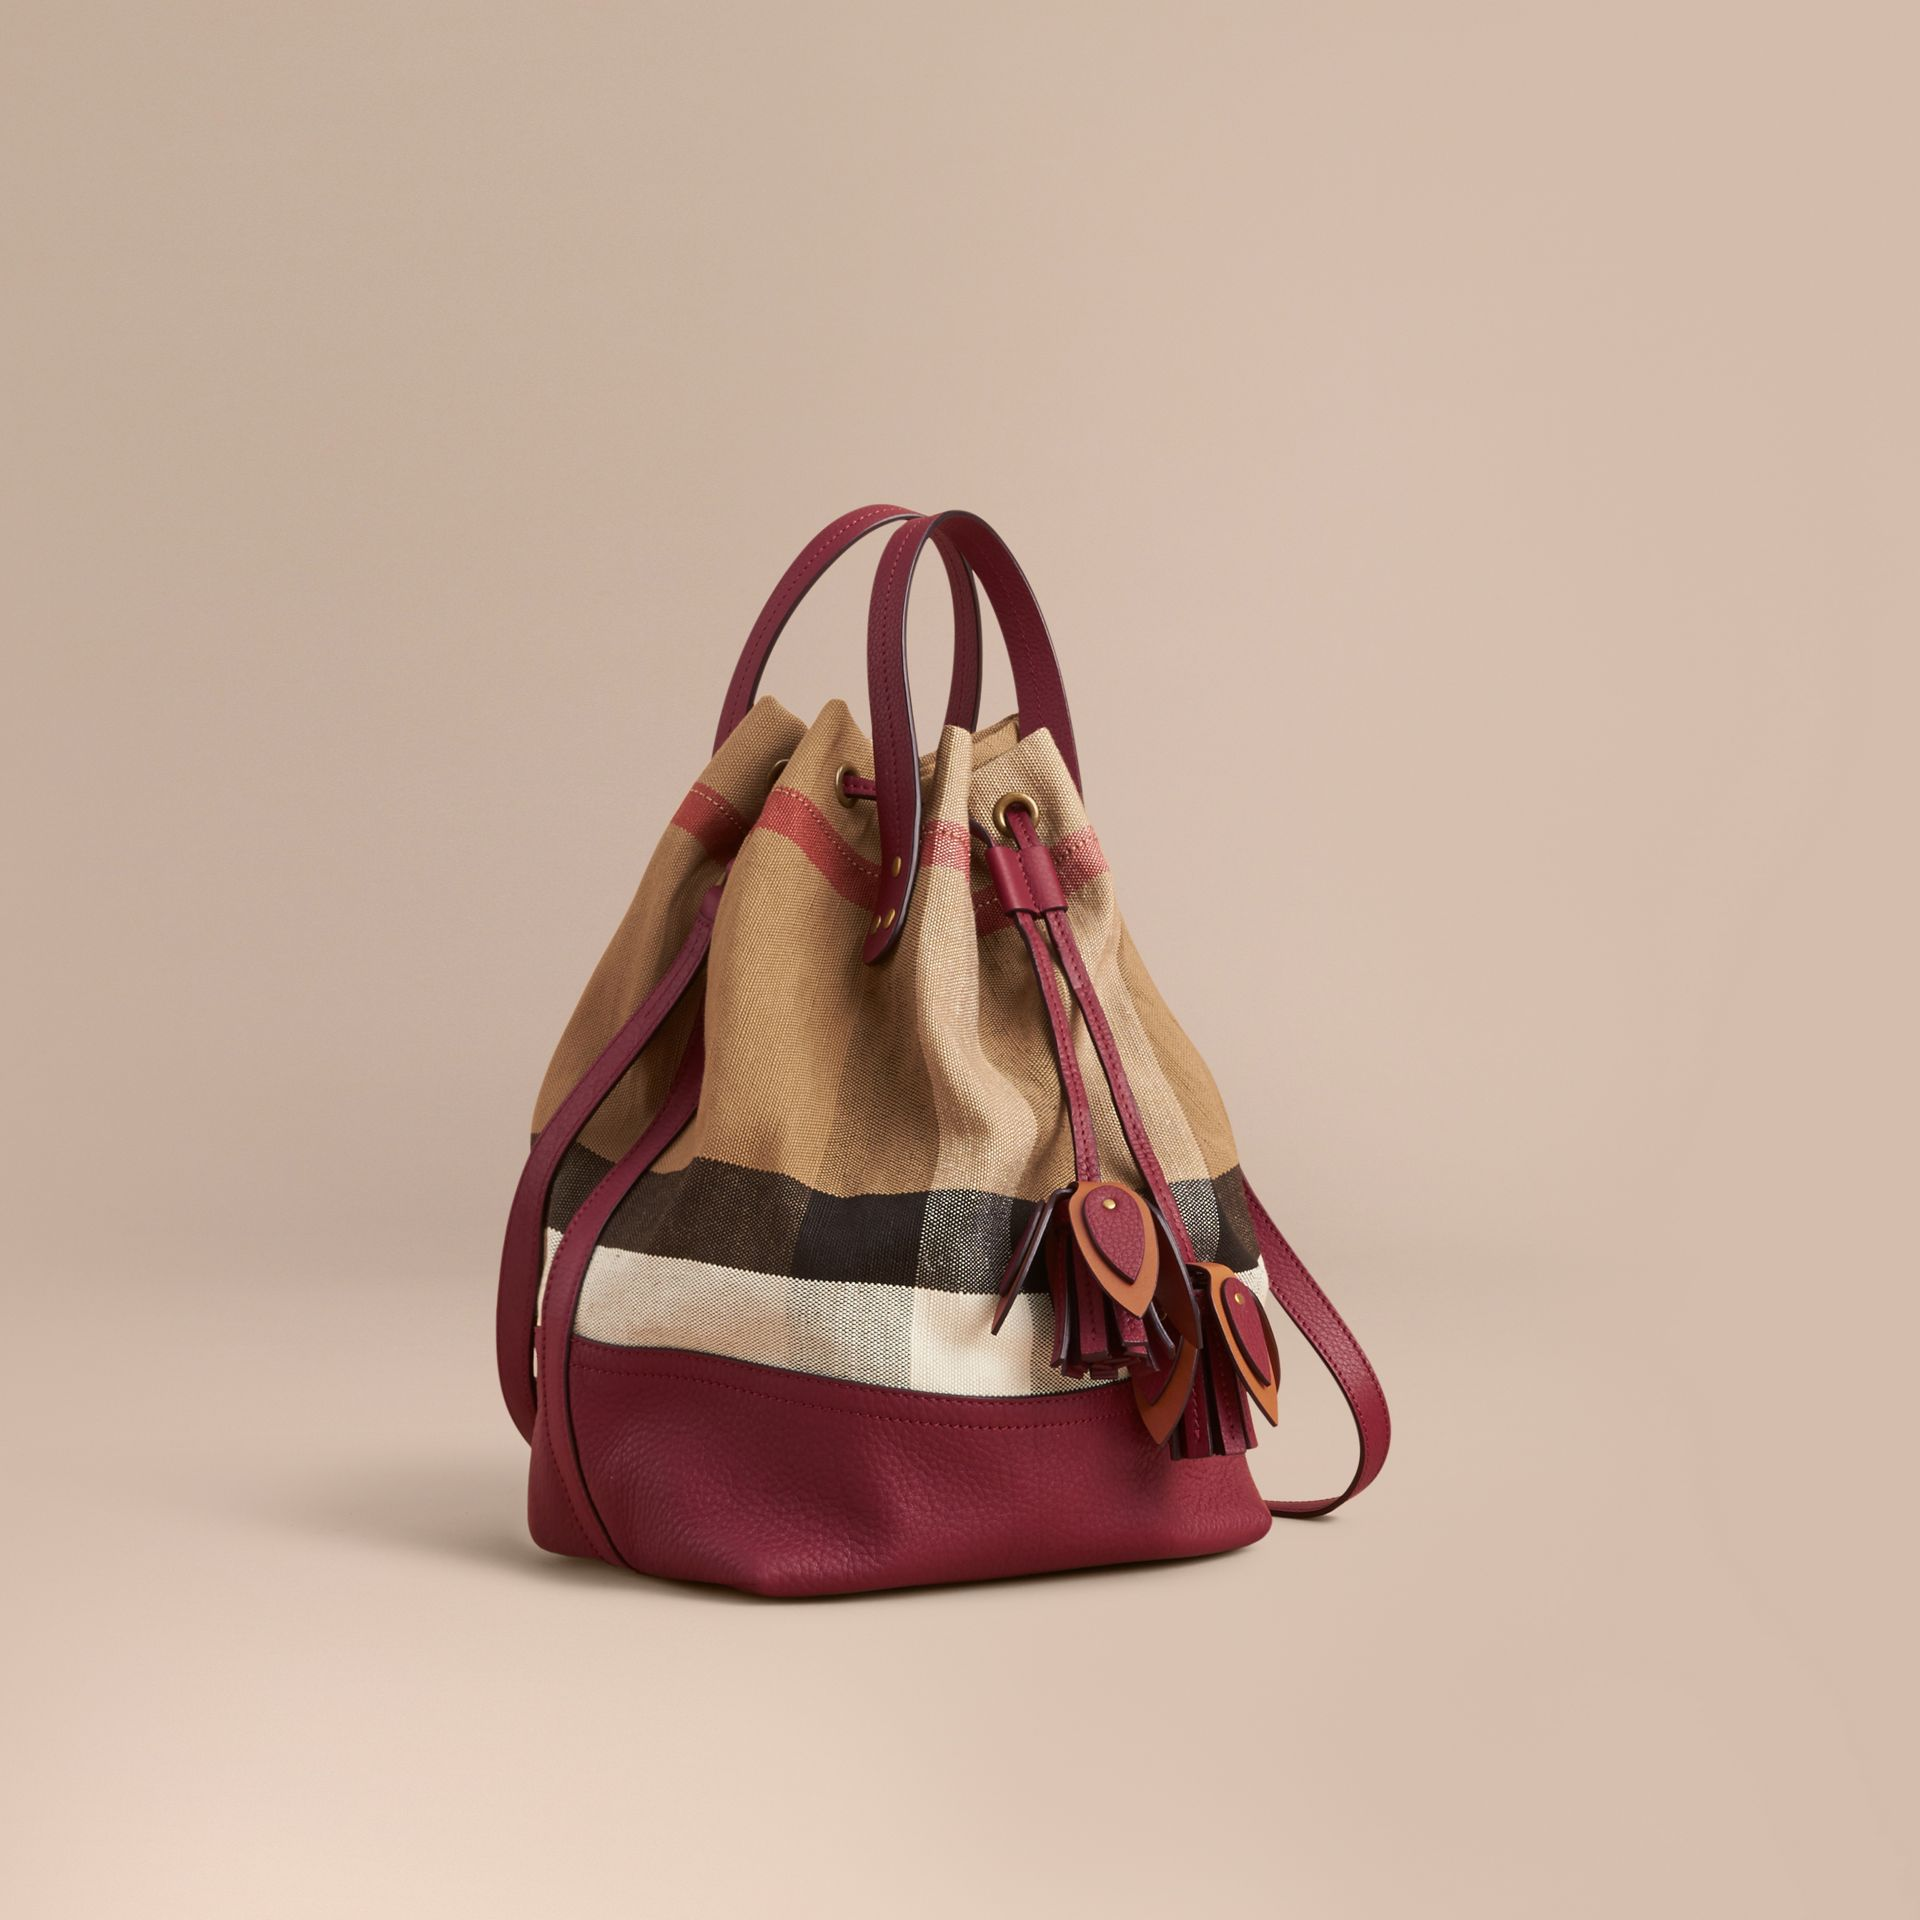 Medium Canvas Check and Leather Bucket Bag in Burgundy Red - Women | Burberry - gallery image 1